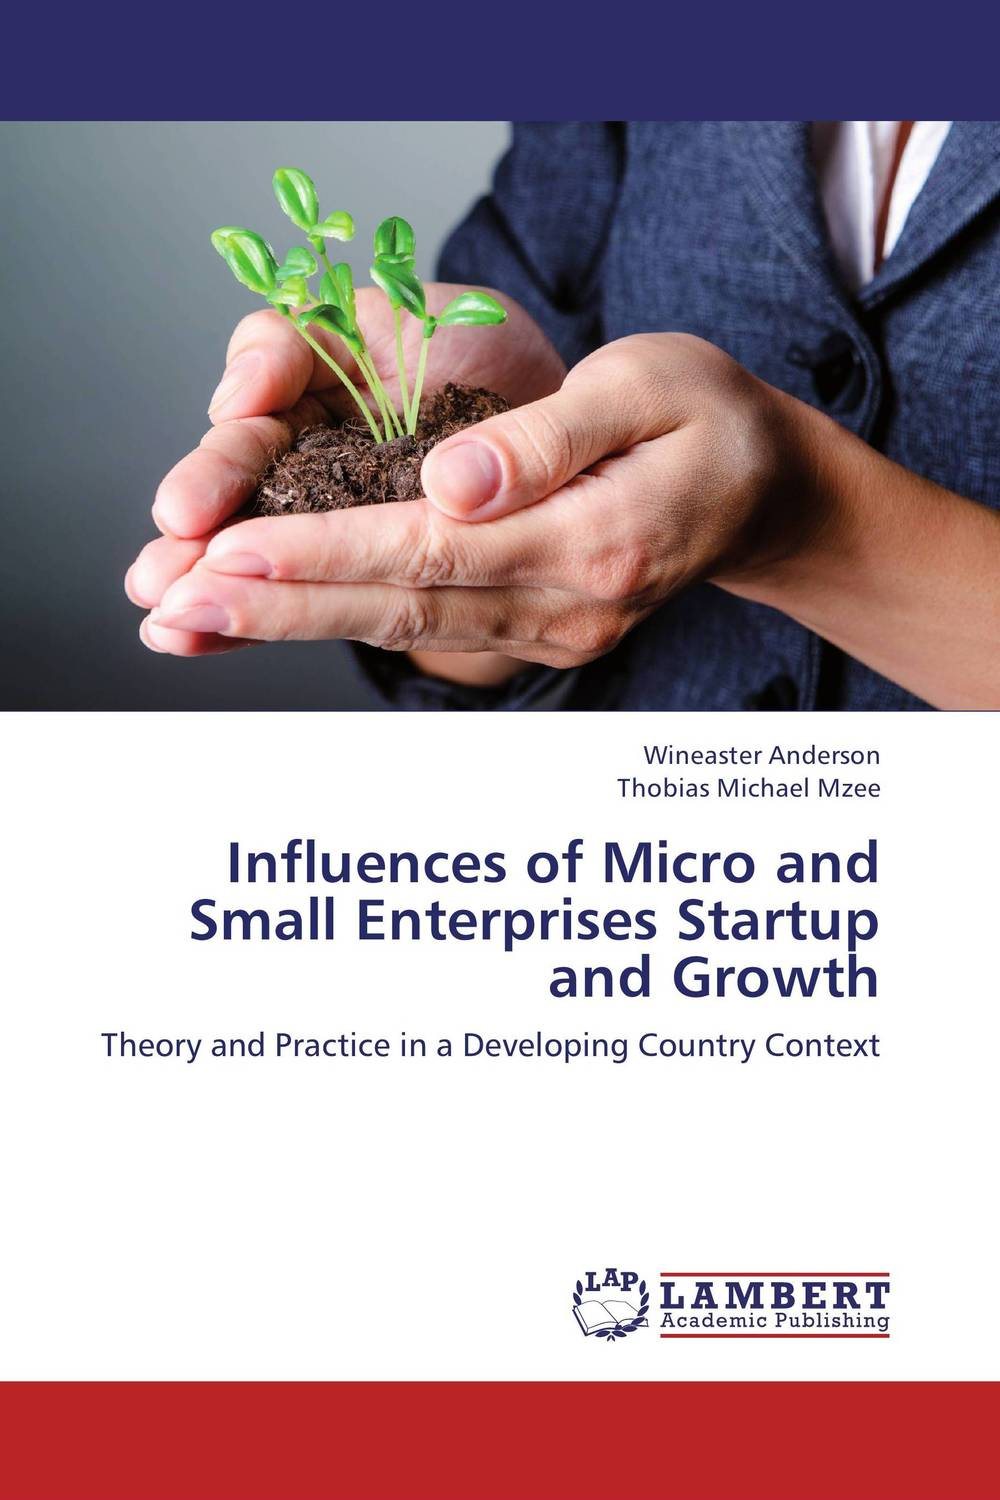 Influences of Micro and Small Enterprises Startup and Growth jaynal ud din ahmed and mohd abdul rashid institutional finance for micro and small entreprises in india